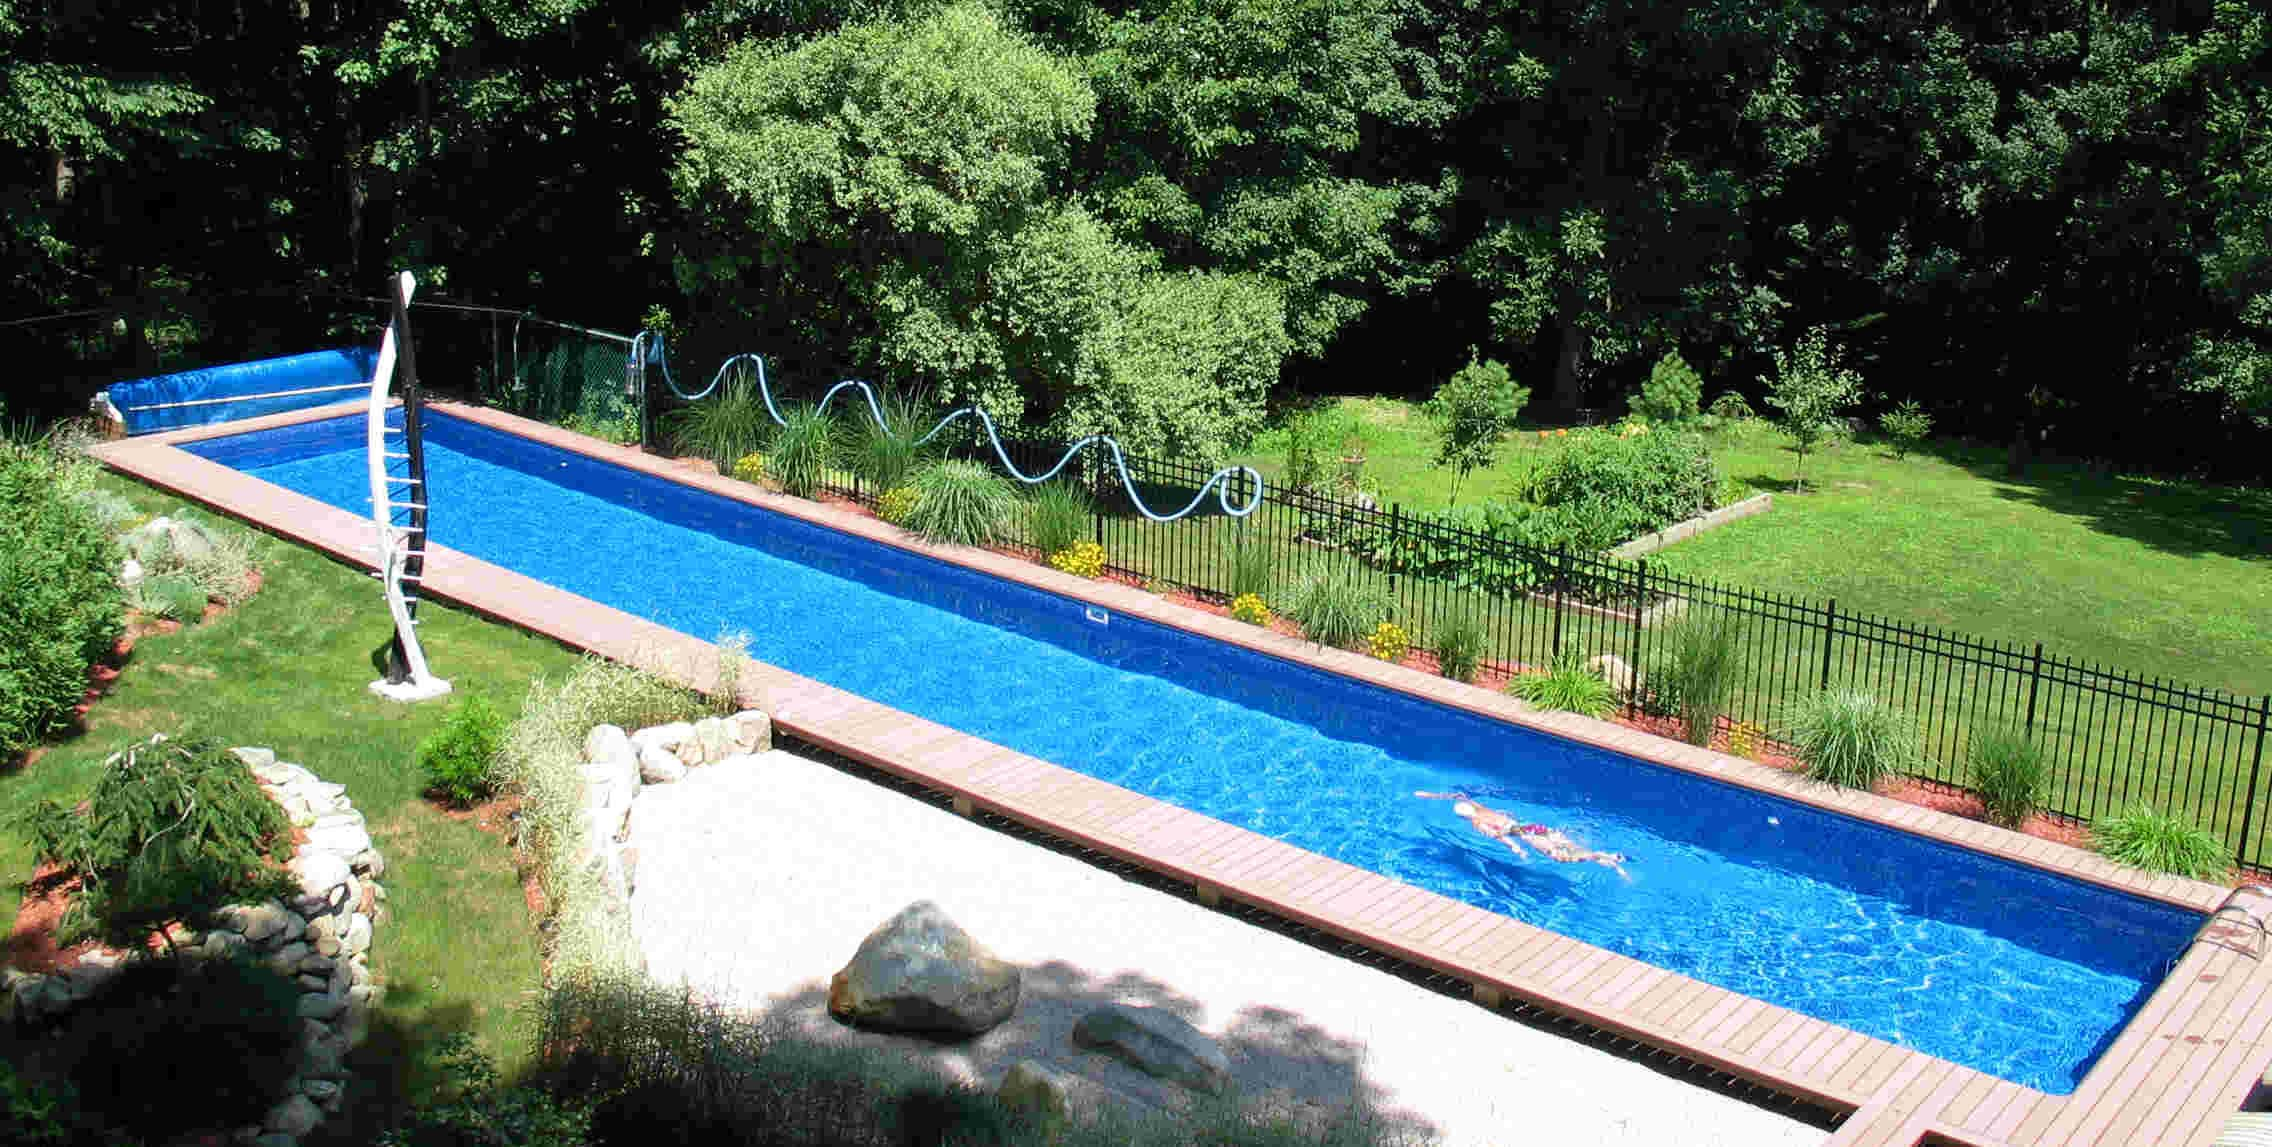 Diy inground swimming pool backyard design ideas for In ground pool backyard ideas